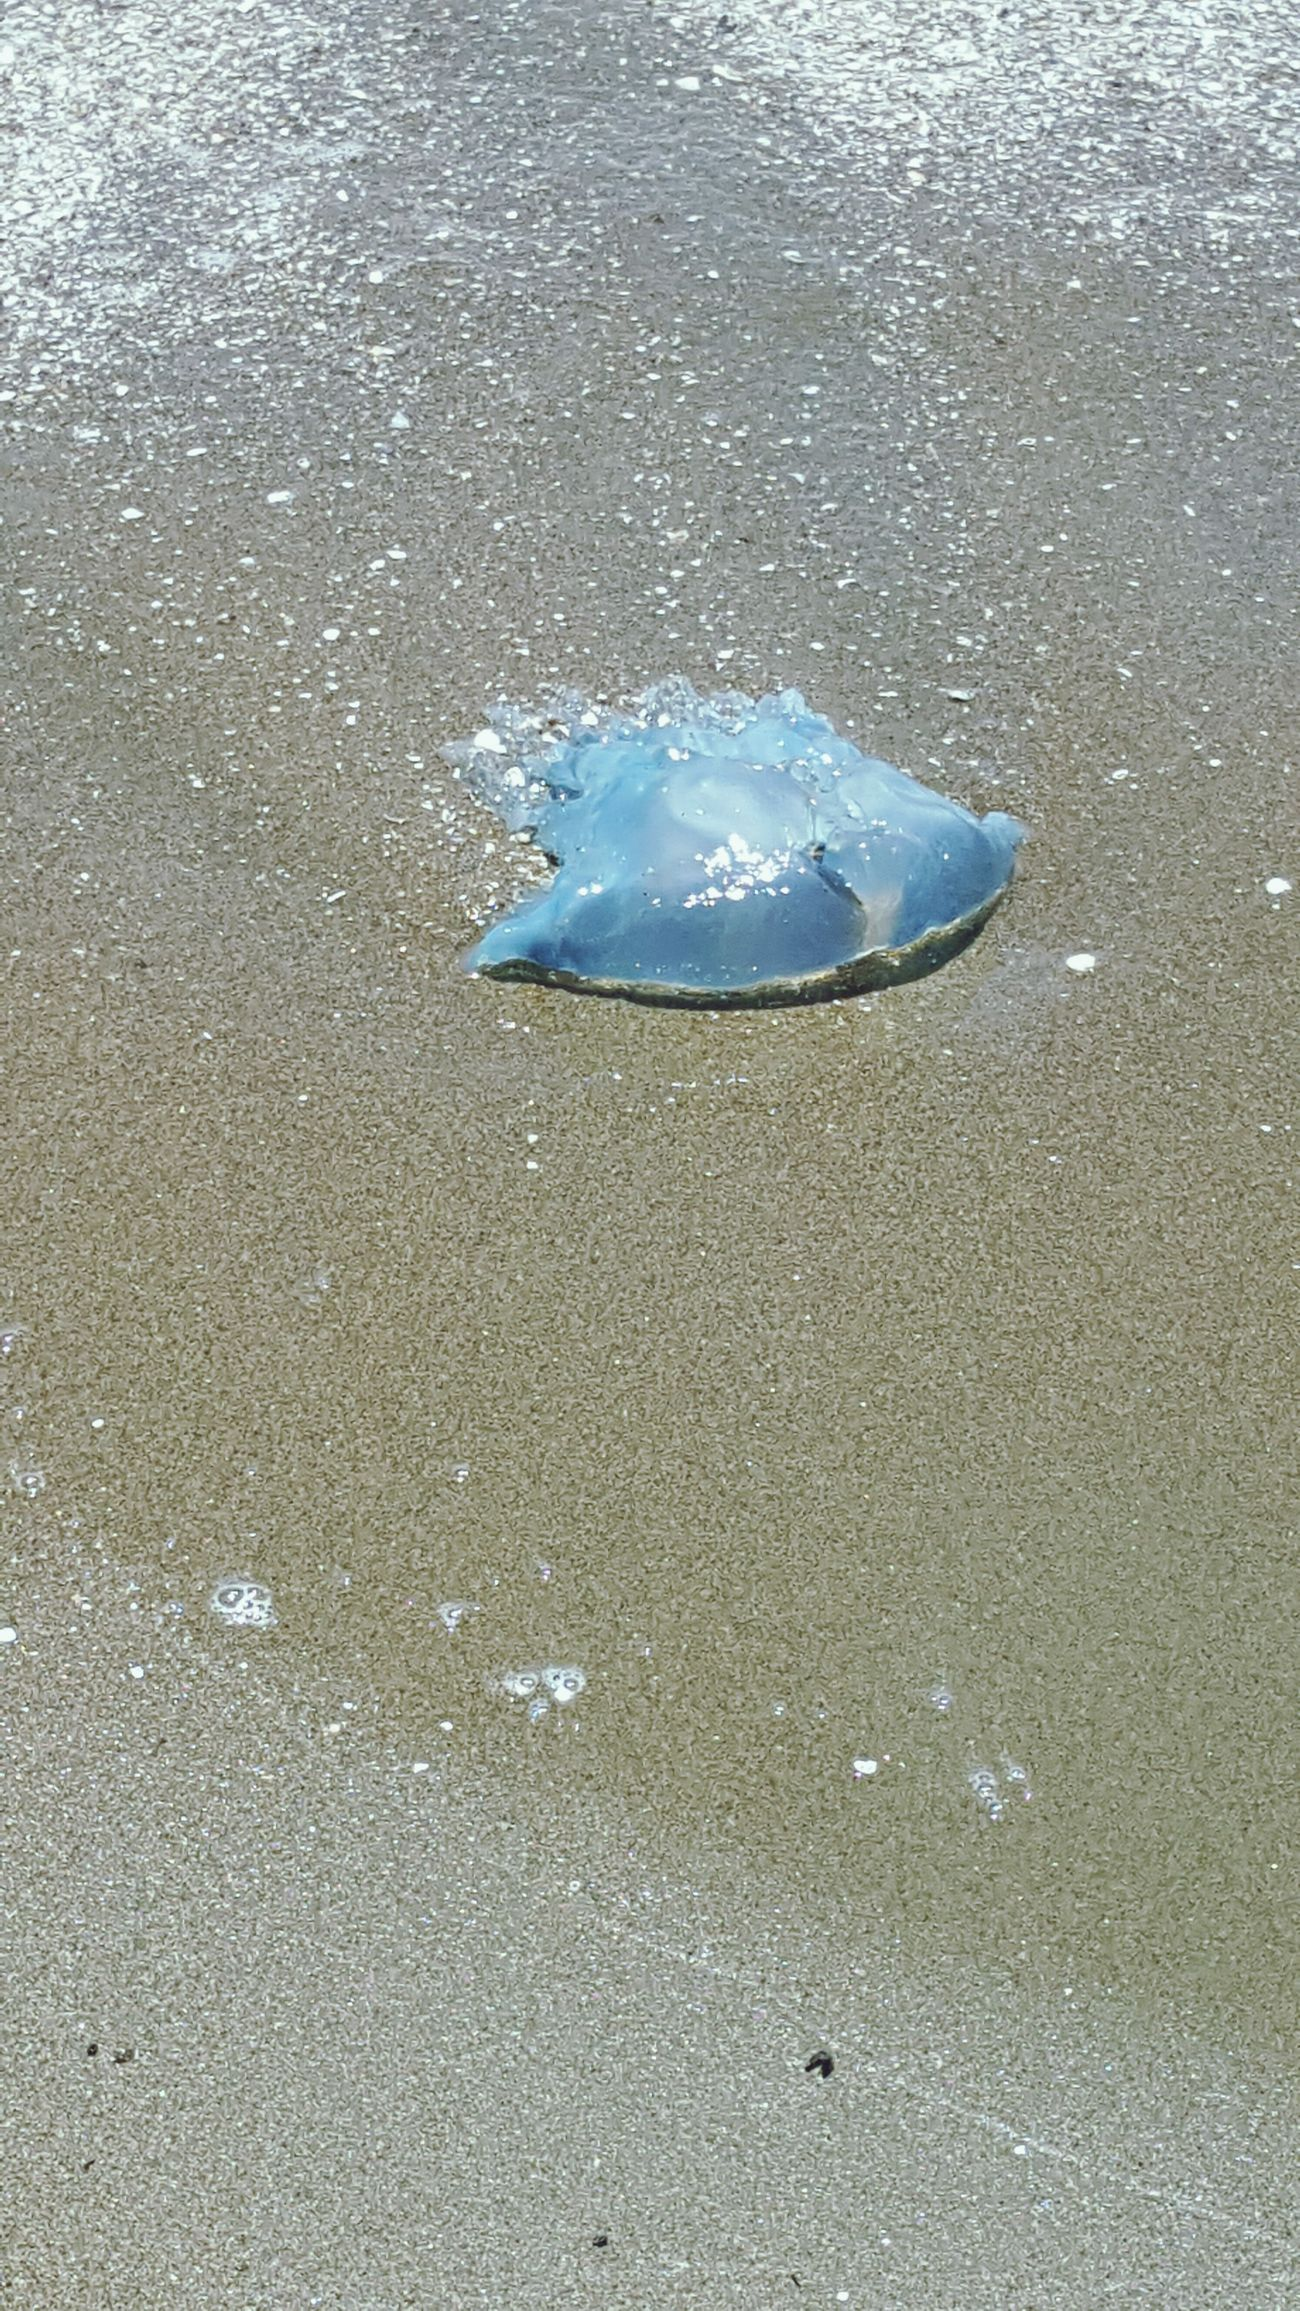 I saw thia jellyfish at the beach today. I thought it was a plastic bag lol. Jellyfish Blue Bluebottle Jellyfish Sea Nature Water